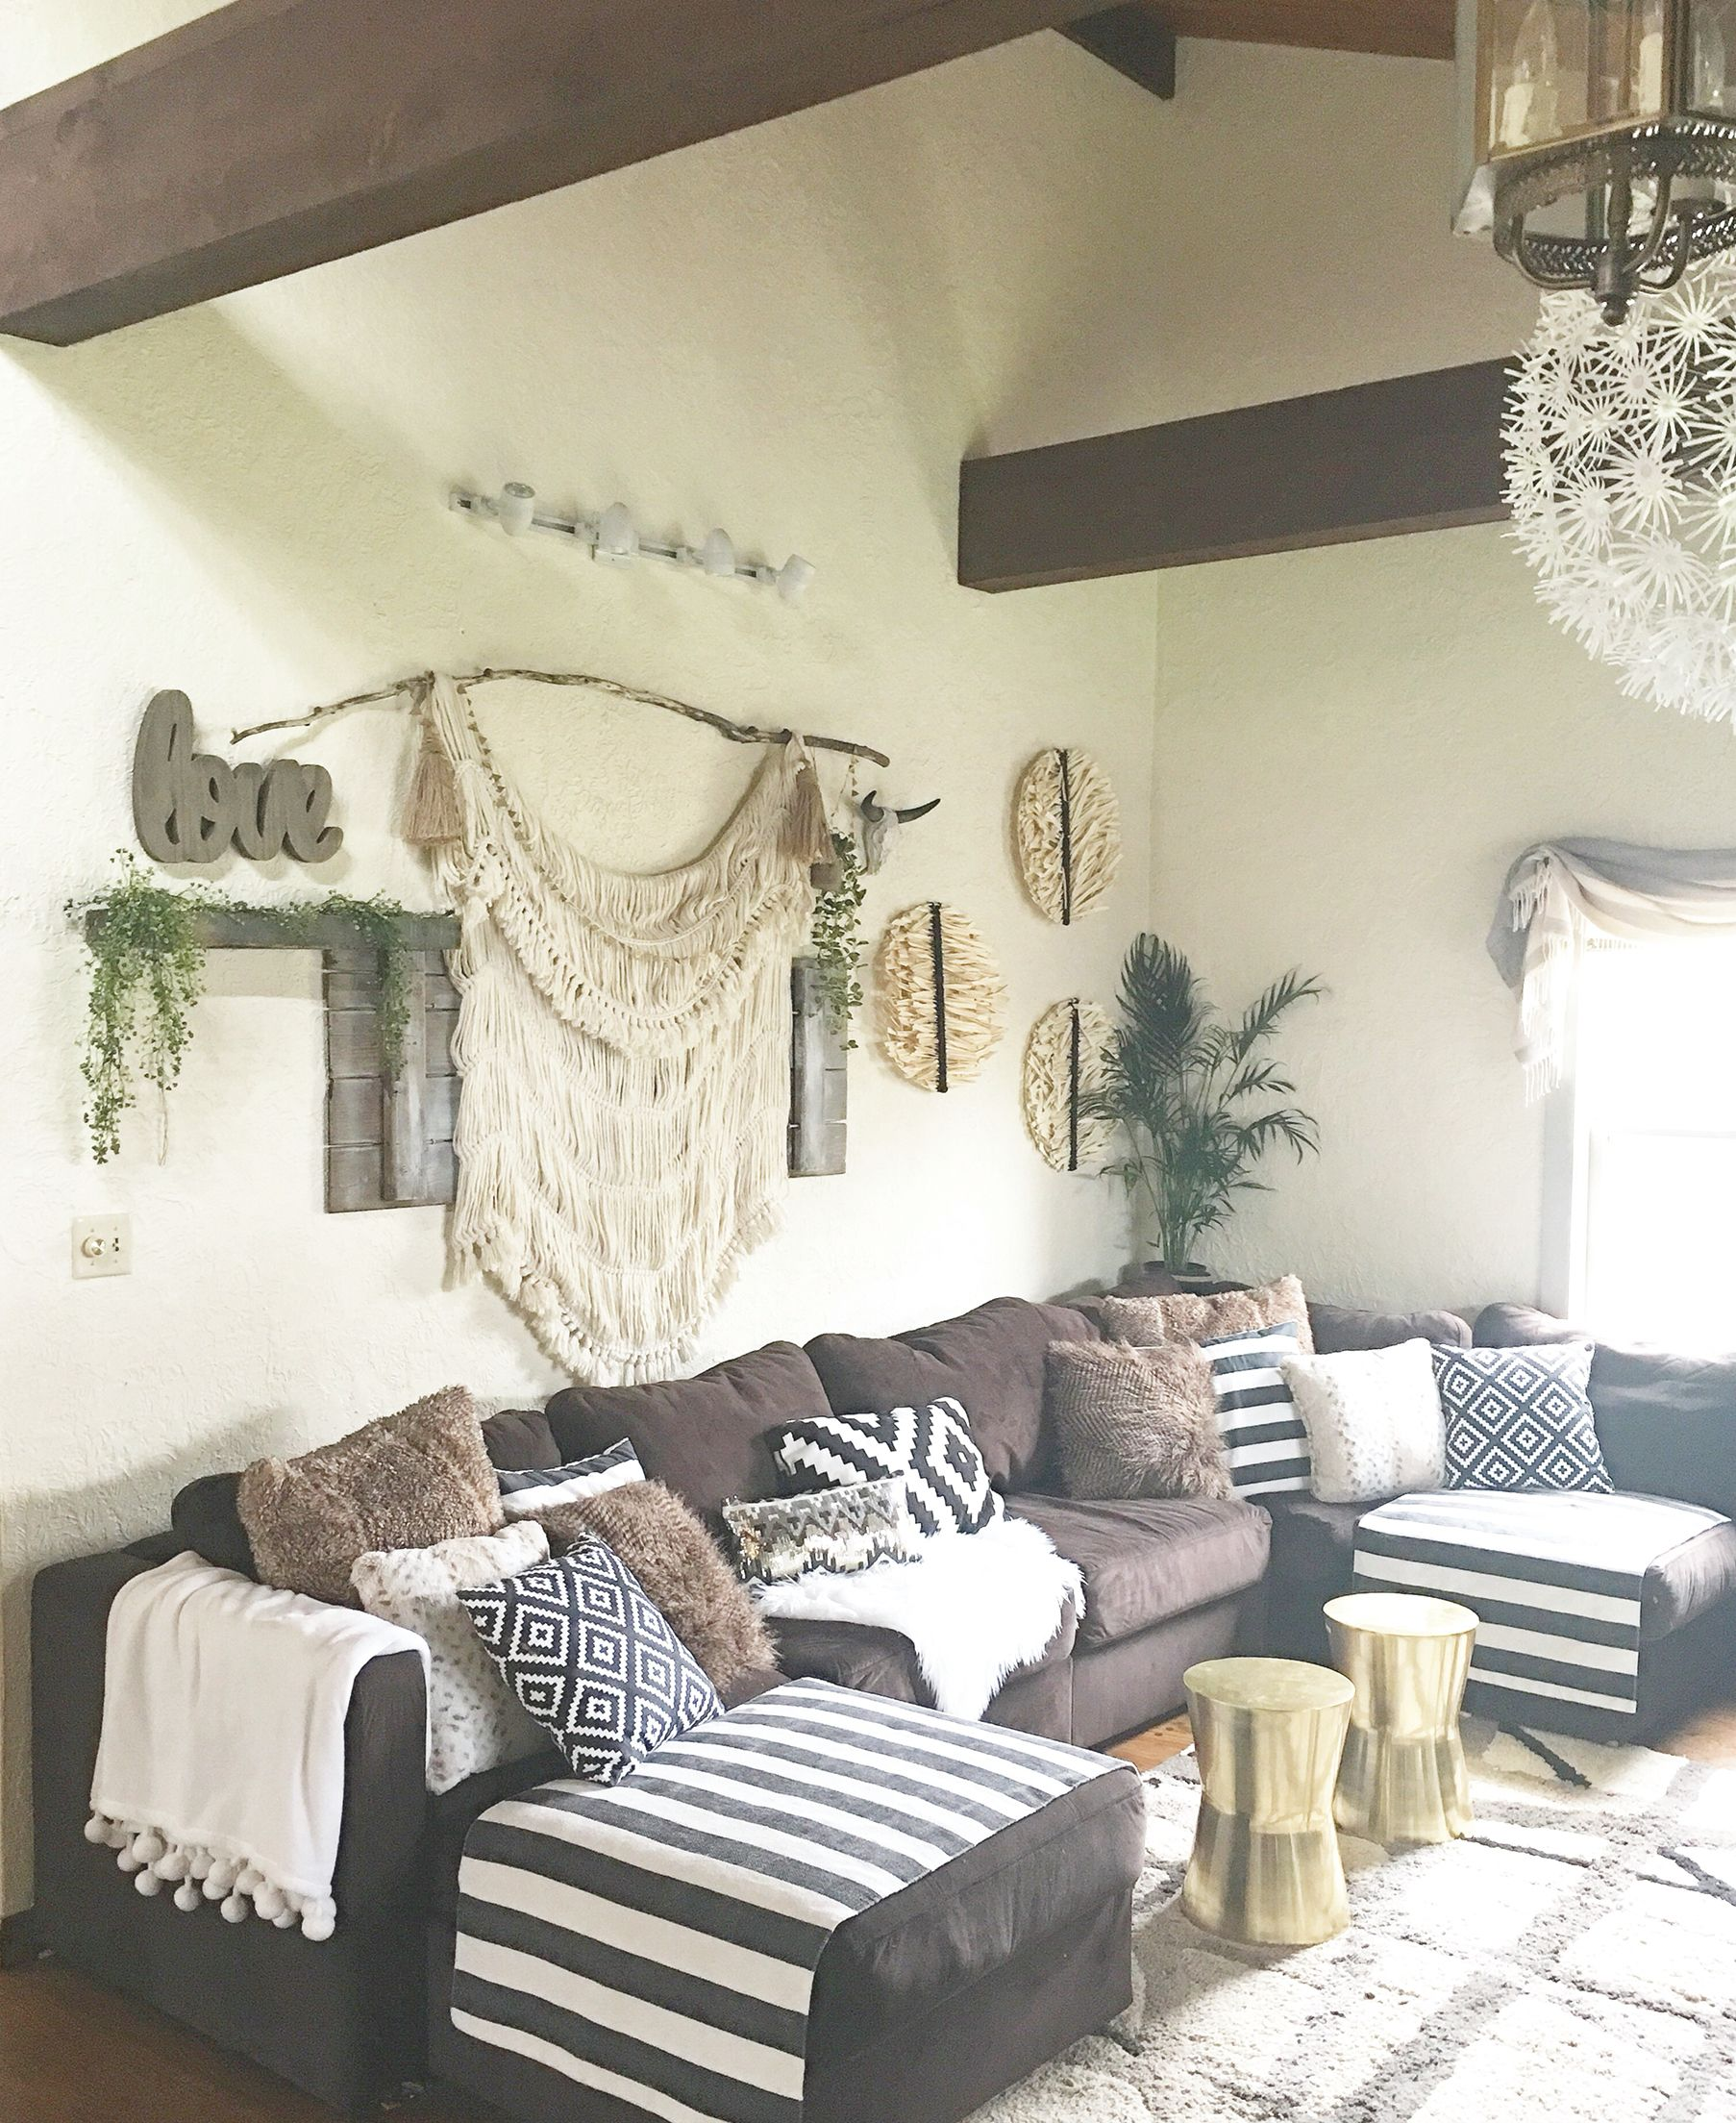 Boho Rustic Glam Living Room | - cozy little space - | Pinterest ...